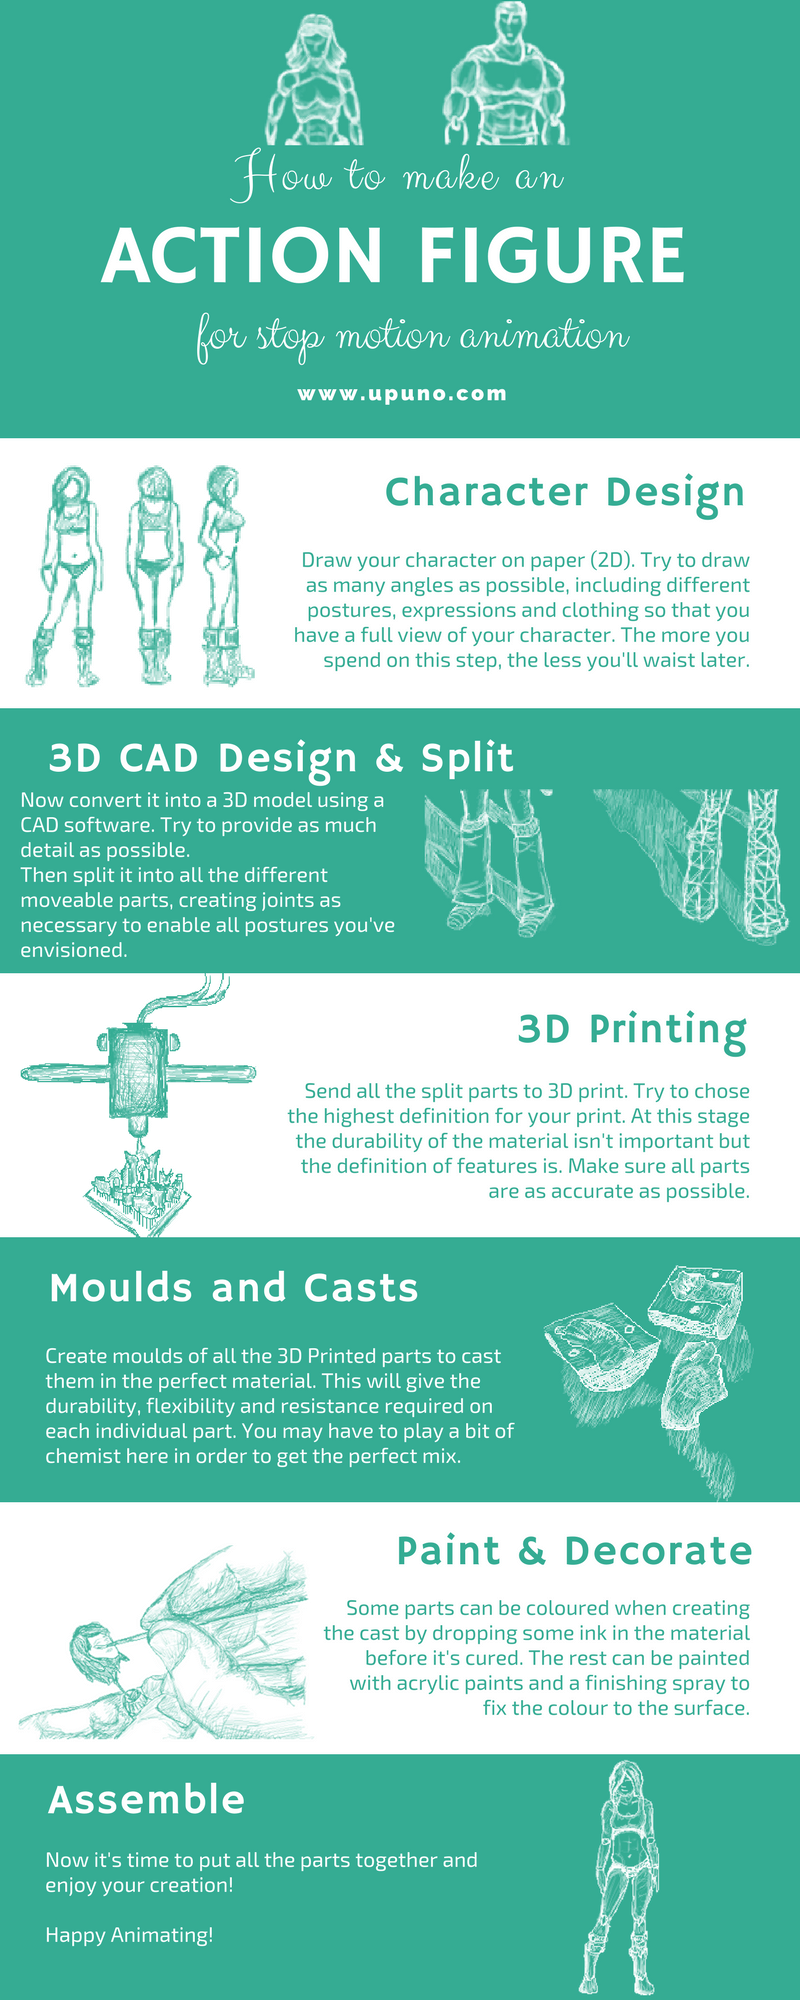 How to make an action figure for stop motion animation | Infographic